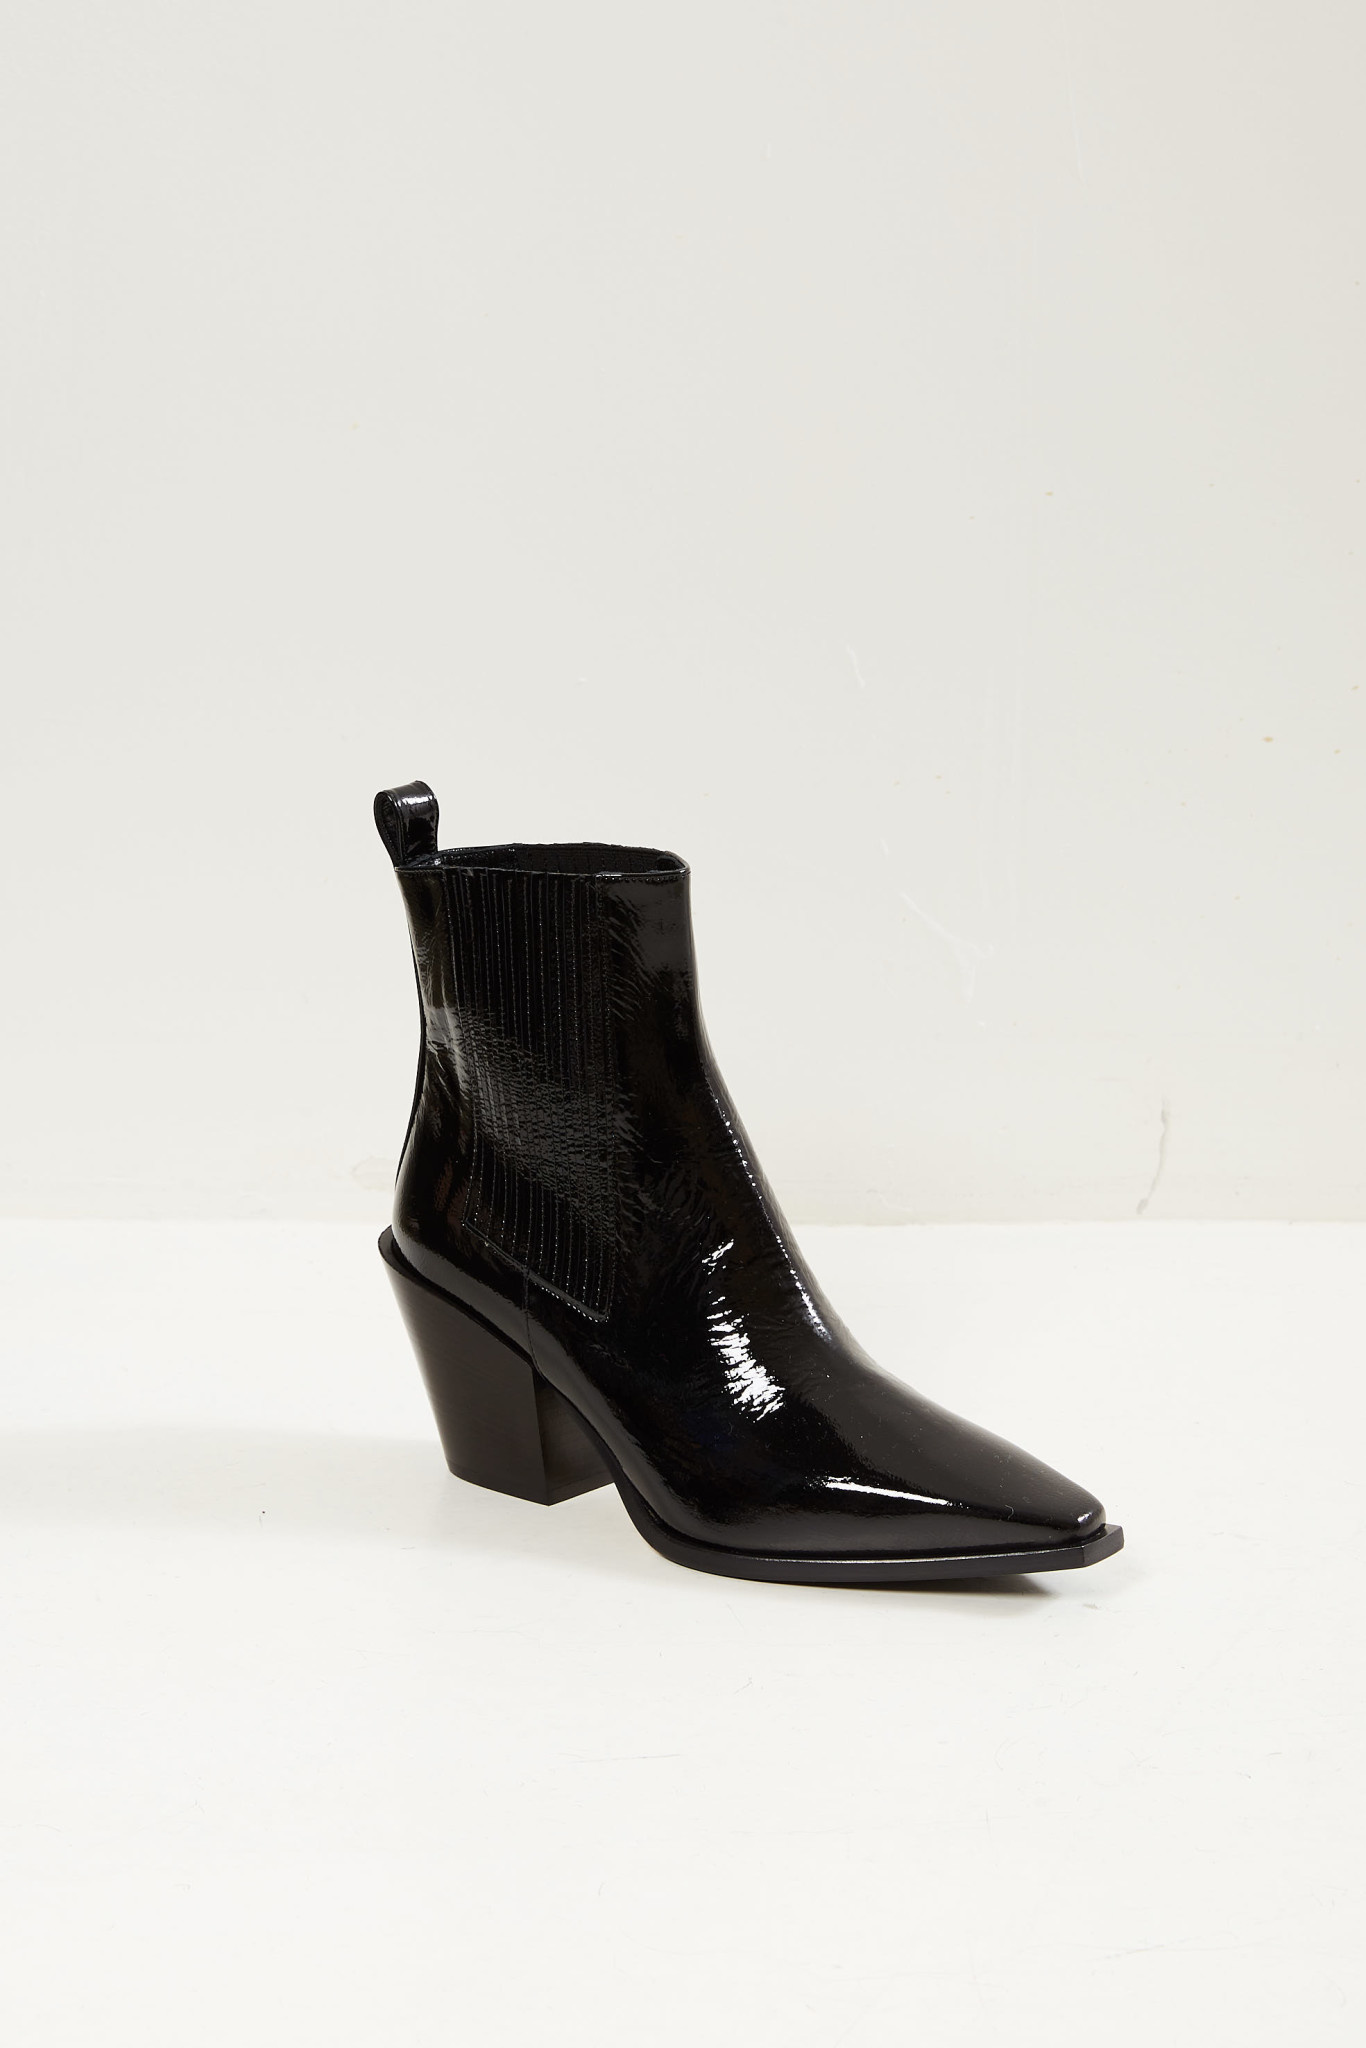 Aeyde Kate pointed boots.